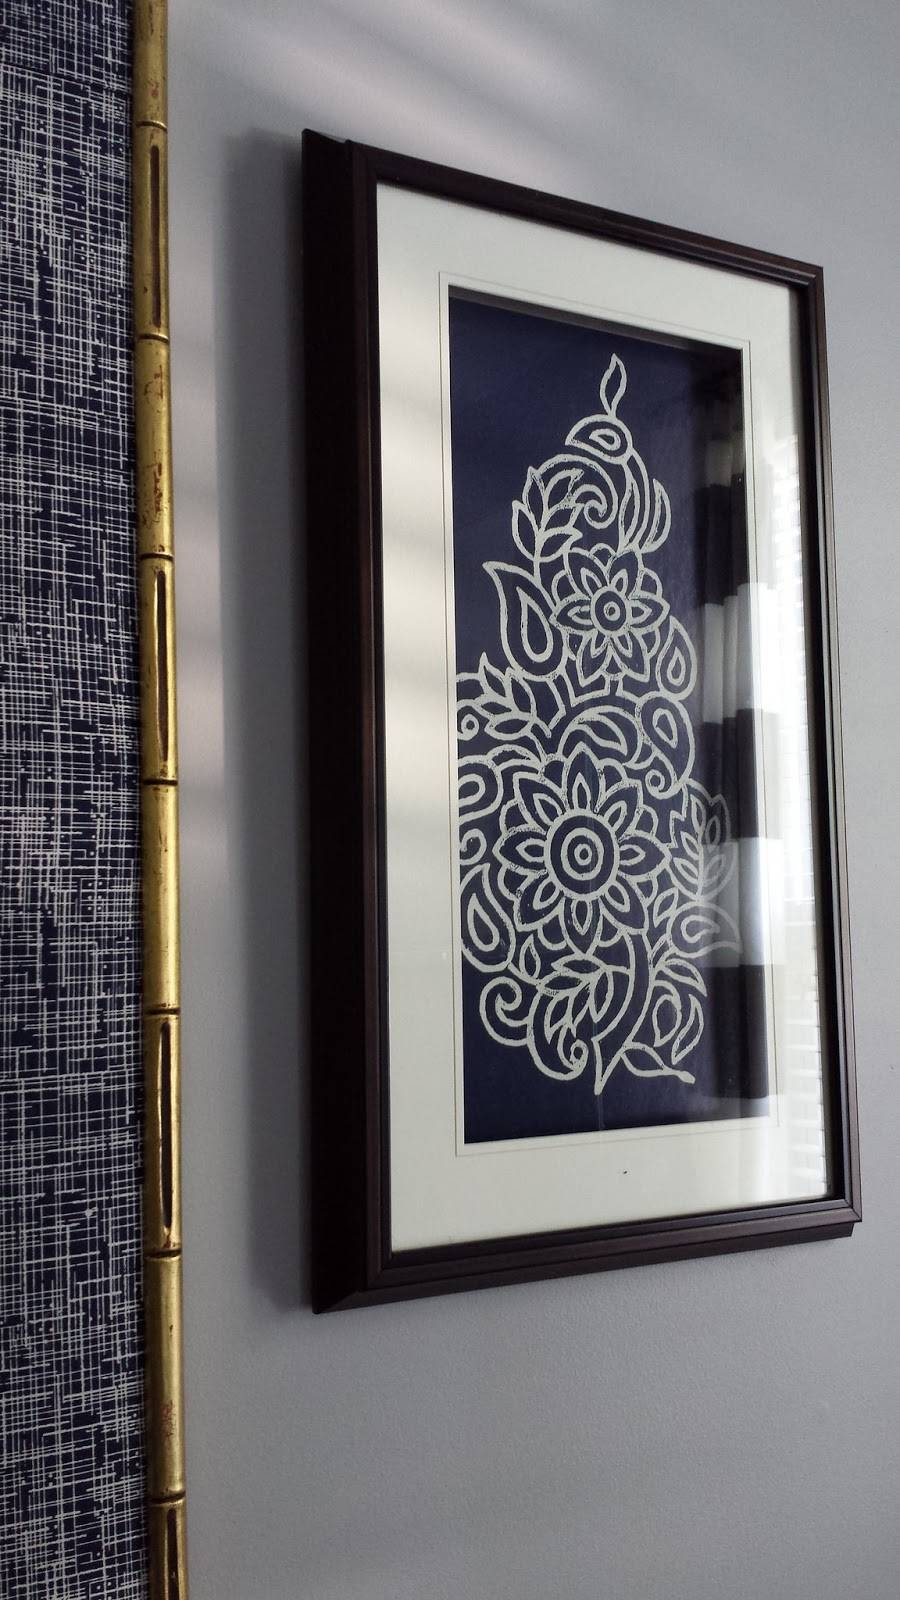 Focal Point Styling: Diy Indigo Wall Art With Framed Fabric Inside Most Up To Date Framed Fabric Wall Art (View 9 of 20)